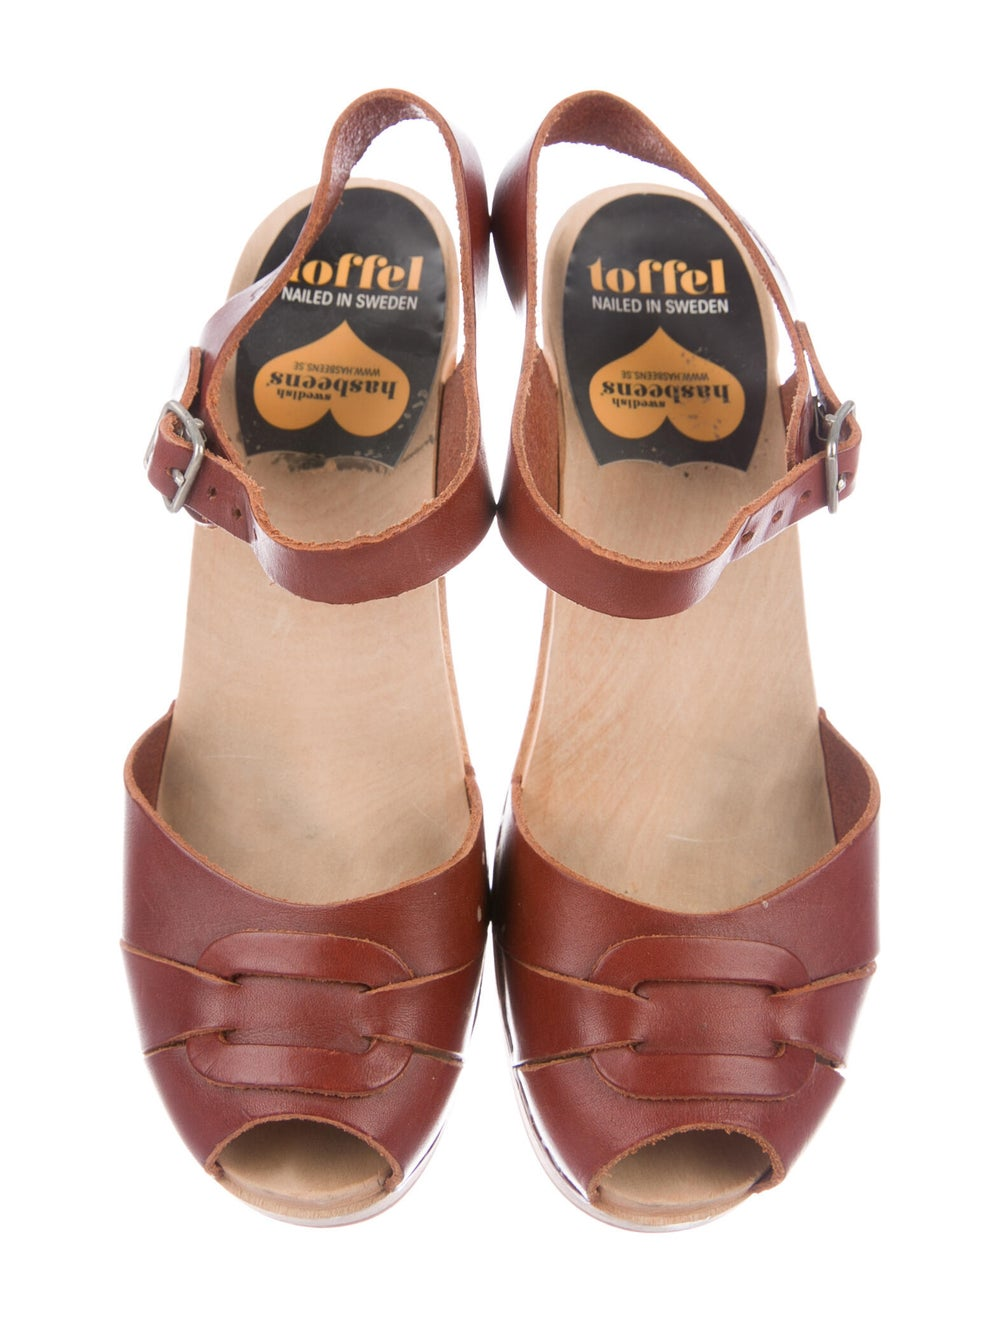 Swedish Hasbeens Leather Sandals Brown - image 3